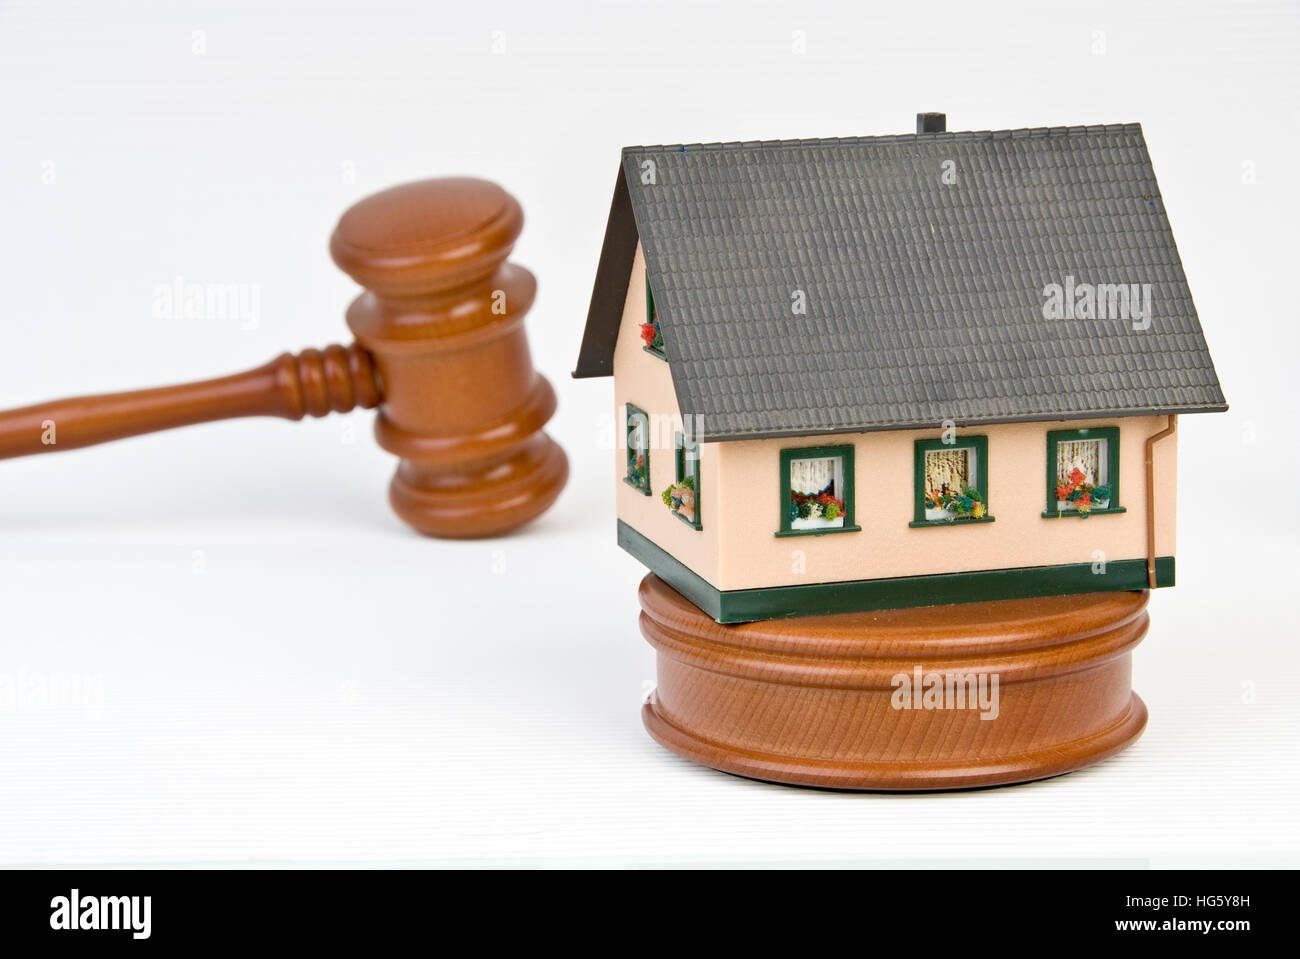 Symbolic for building auktion - Stock Image